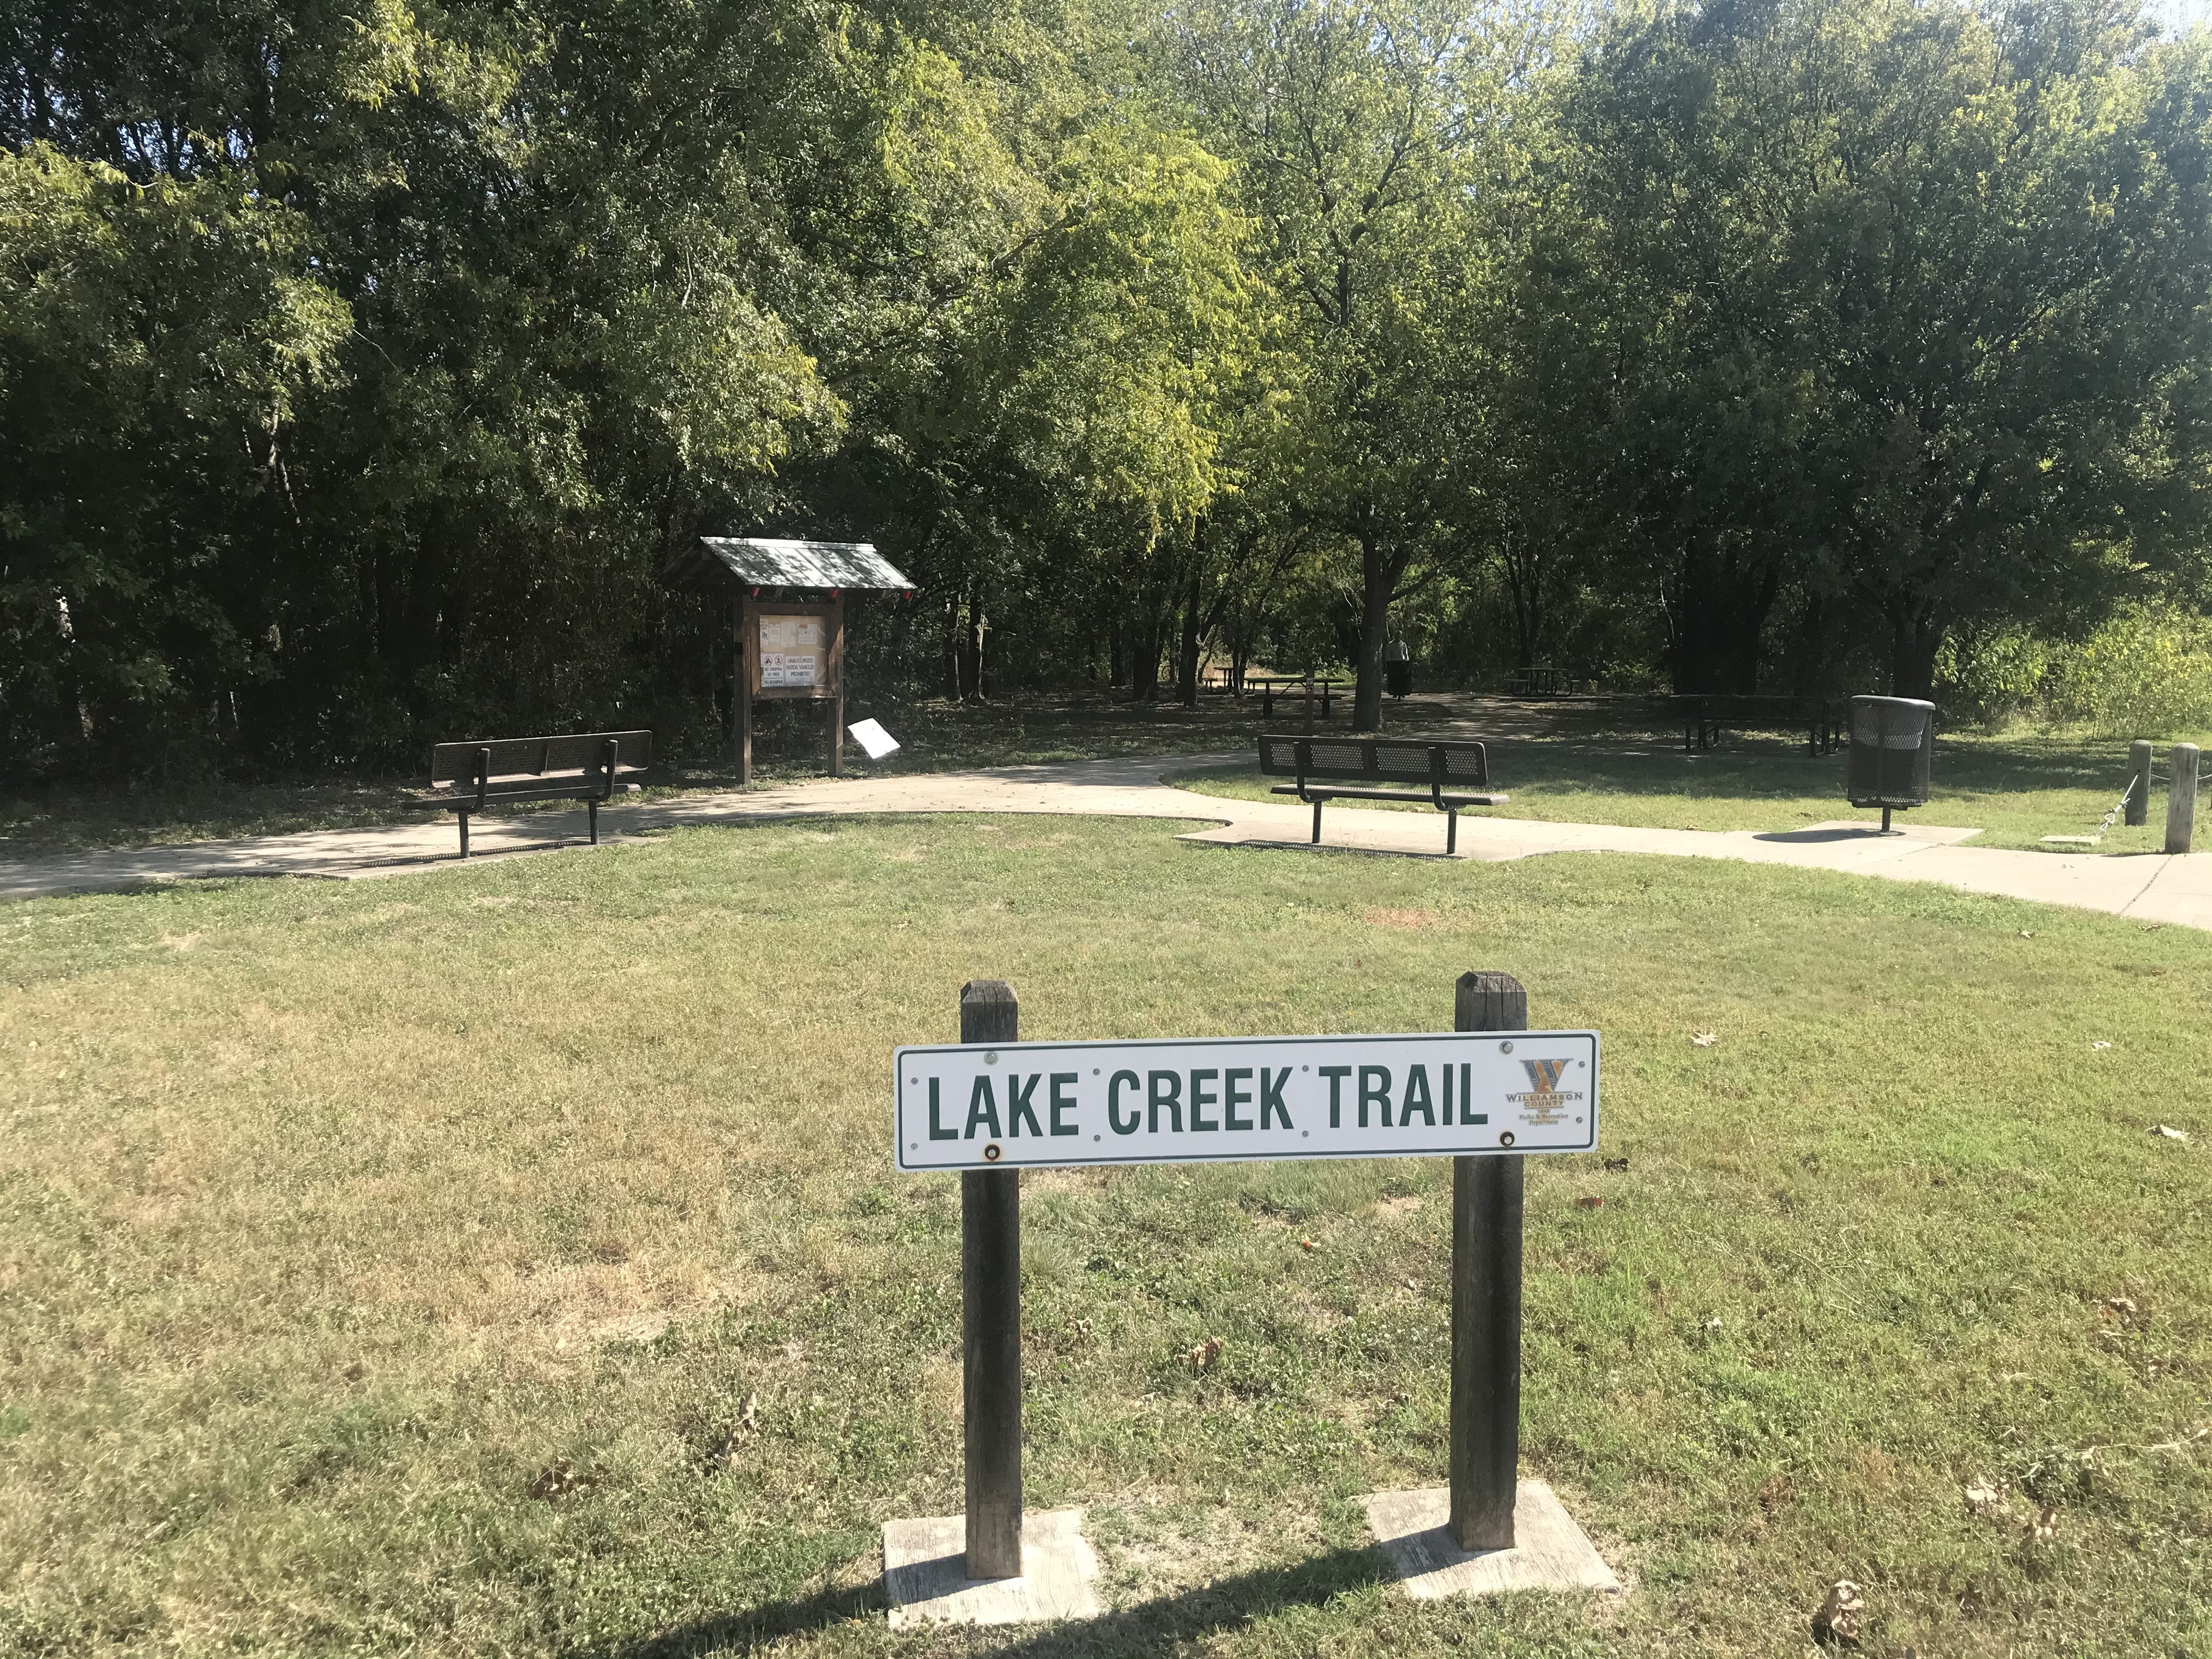 Lake Creek Trail (1)637384764854613868